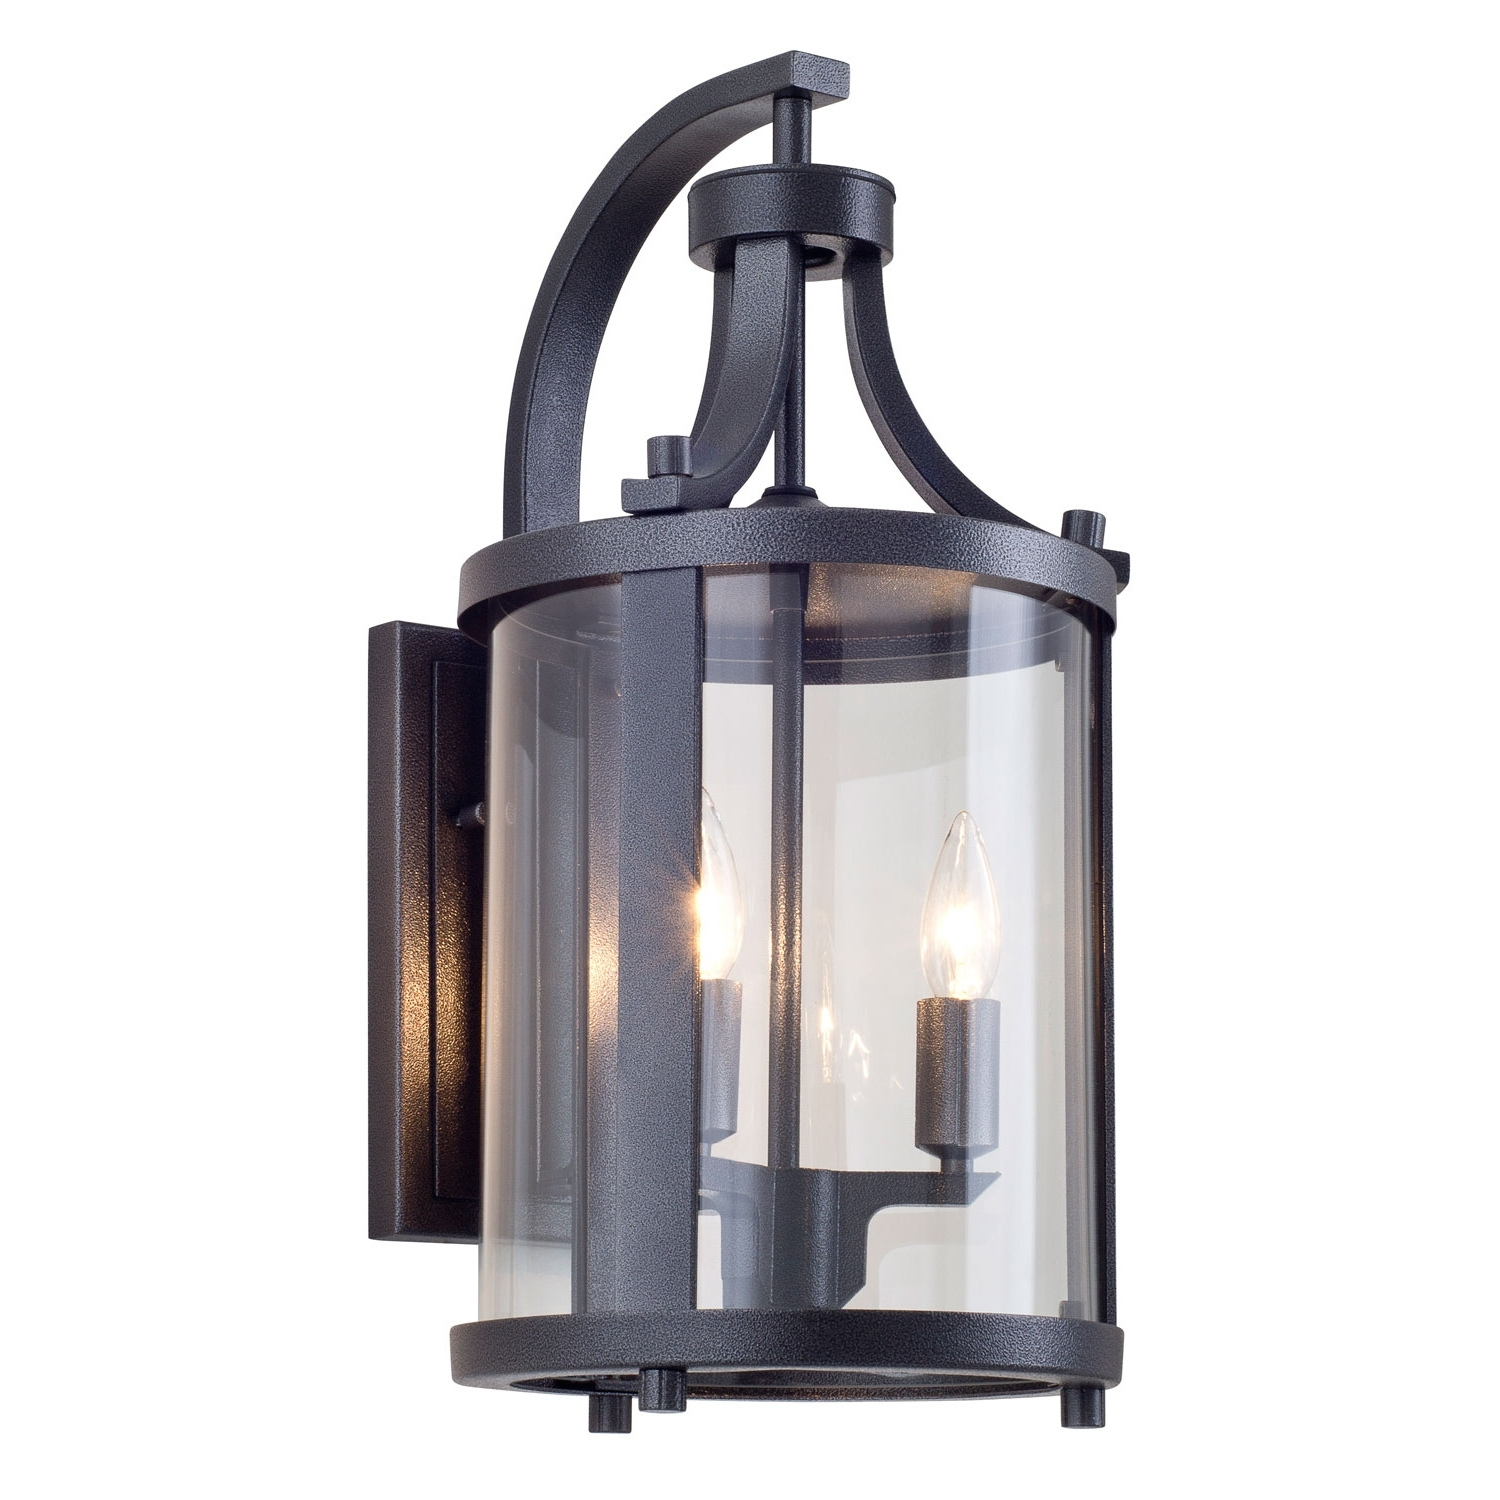 Outdoor Wall Lighting On Sale (View 8 of 20)